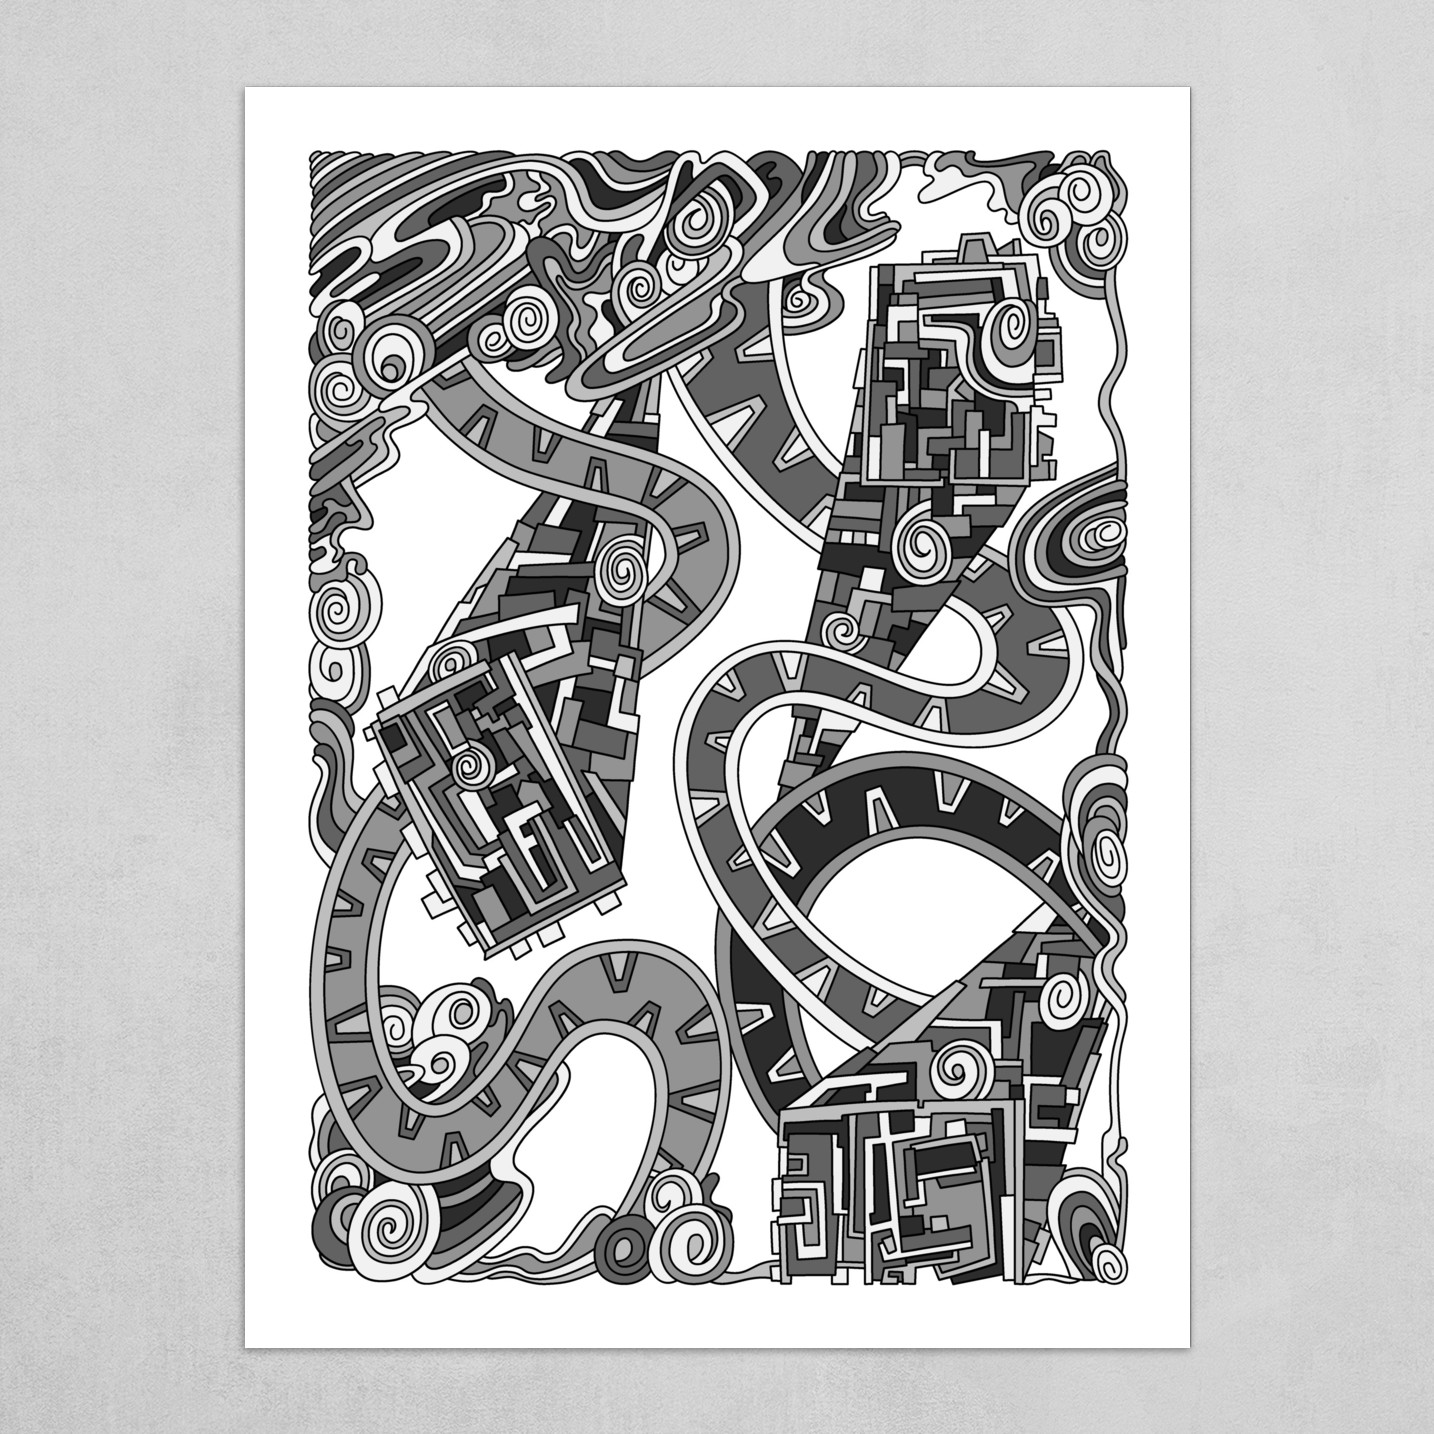 Wandering Abstract Line Art 24: Grayscale